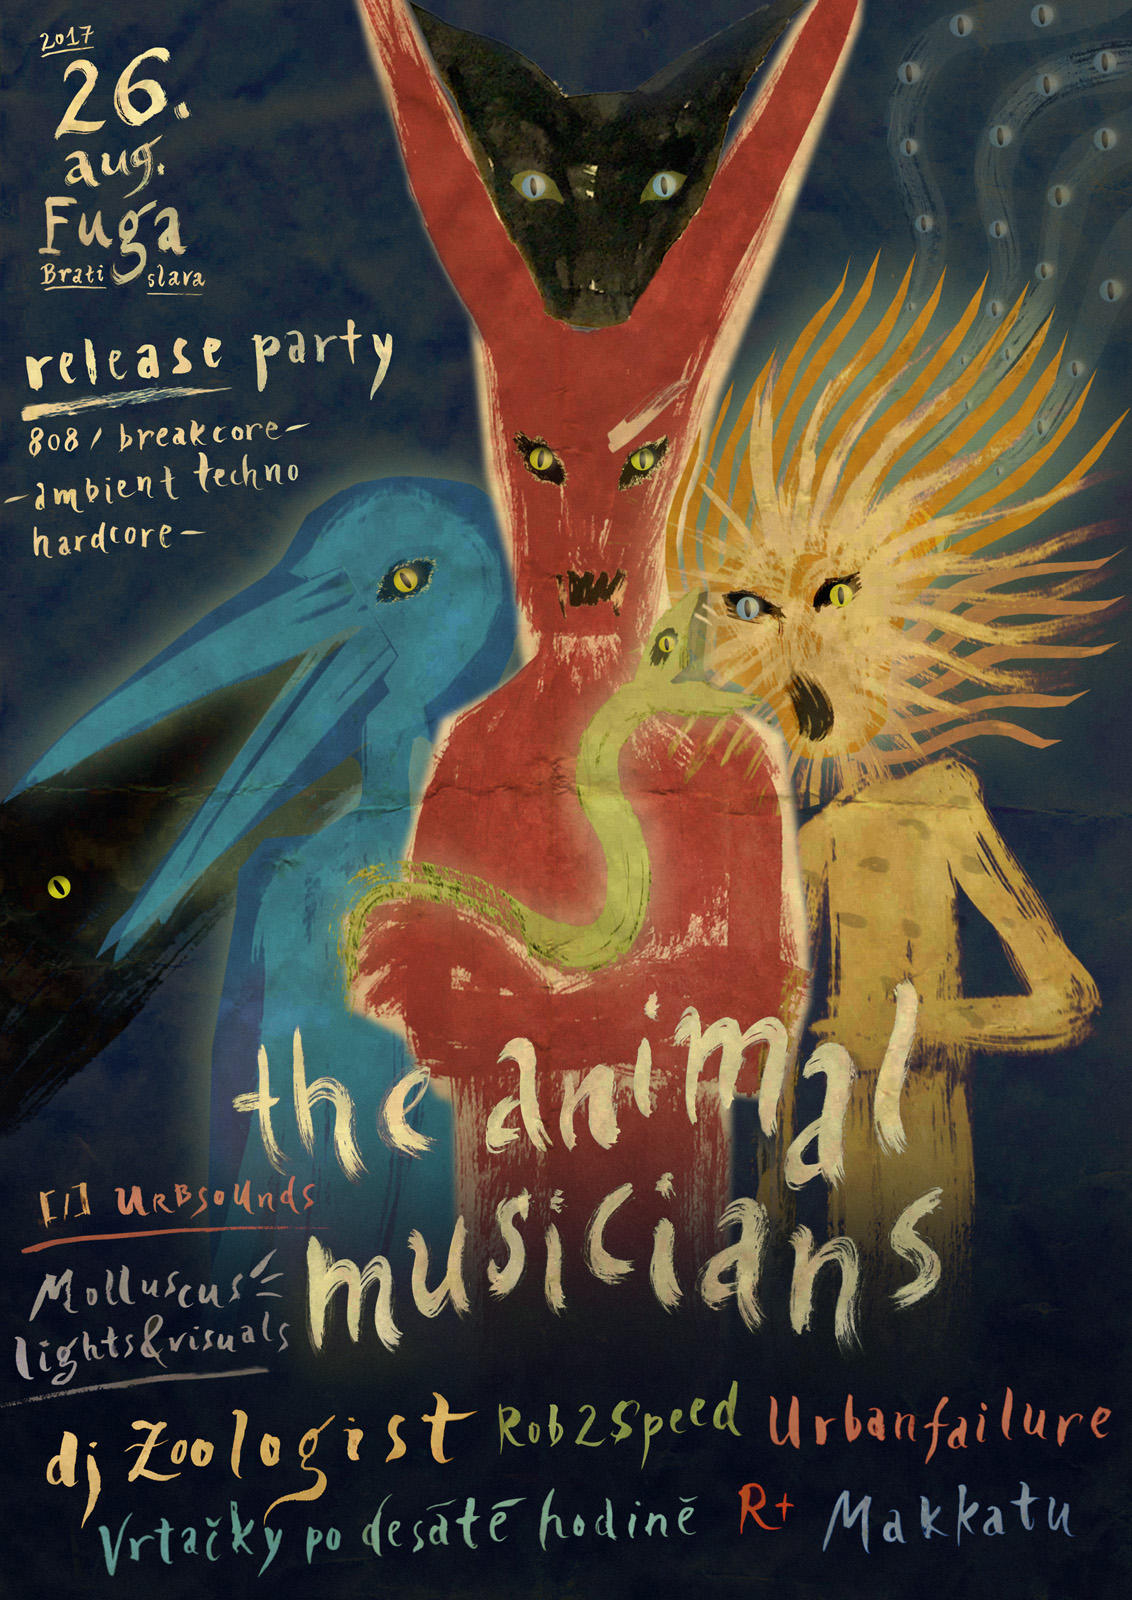 26 August 2017 :: The Animal Musicians release party